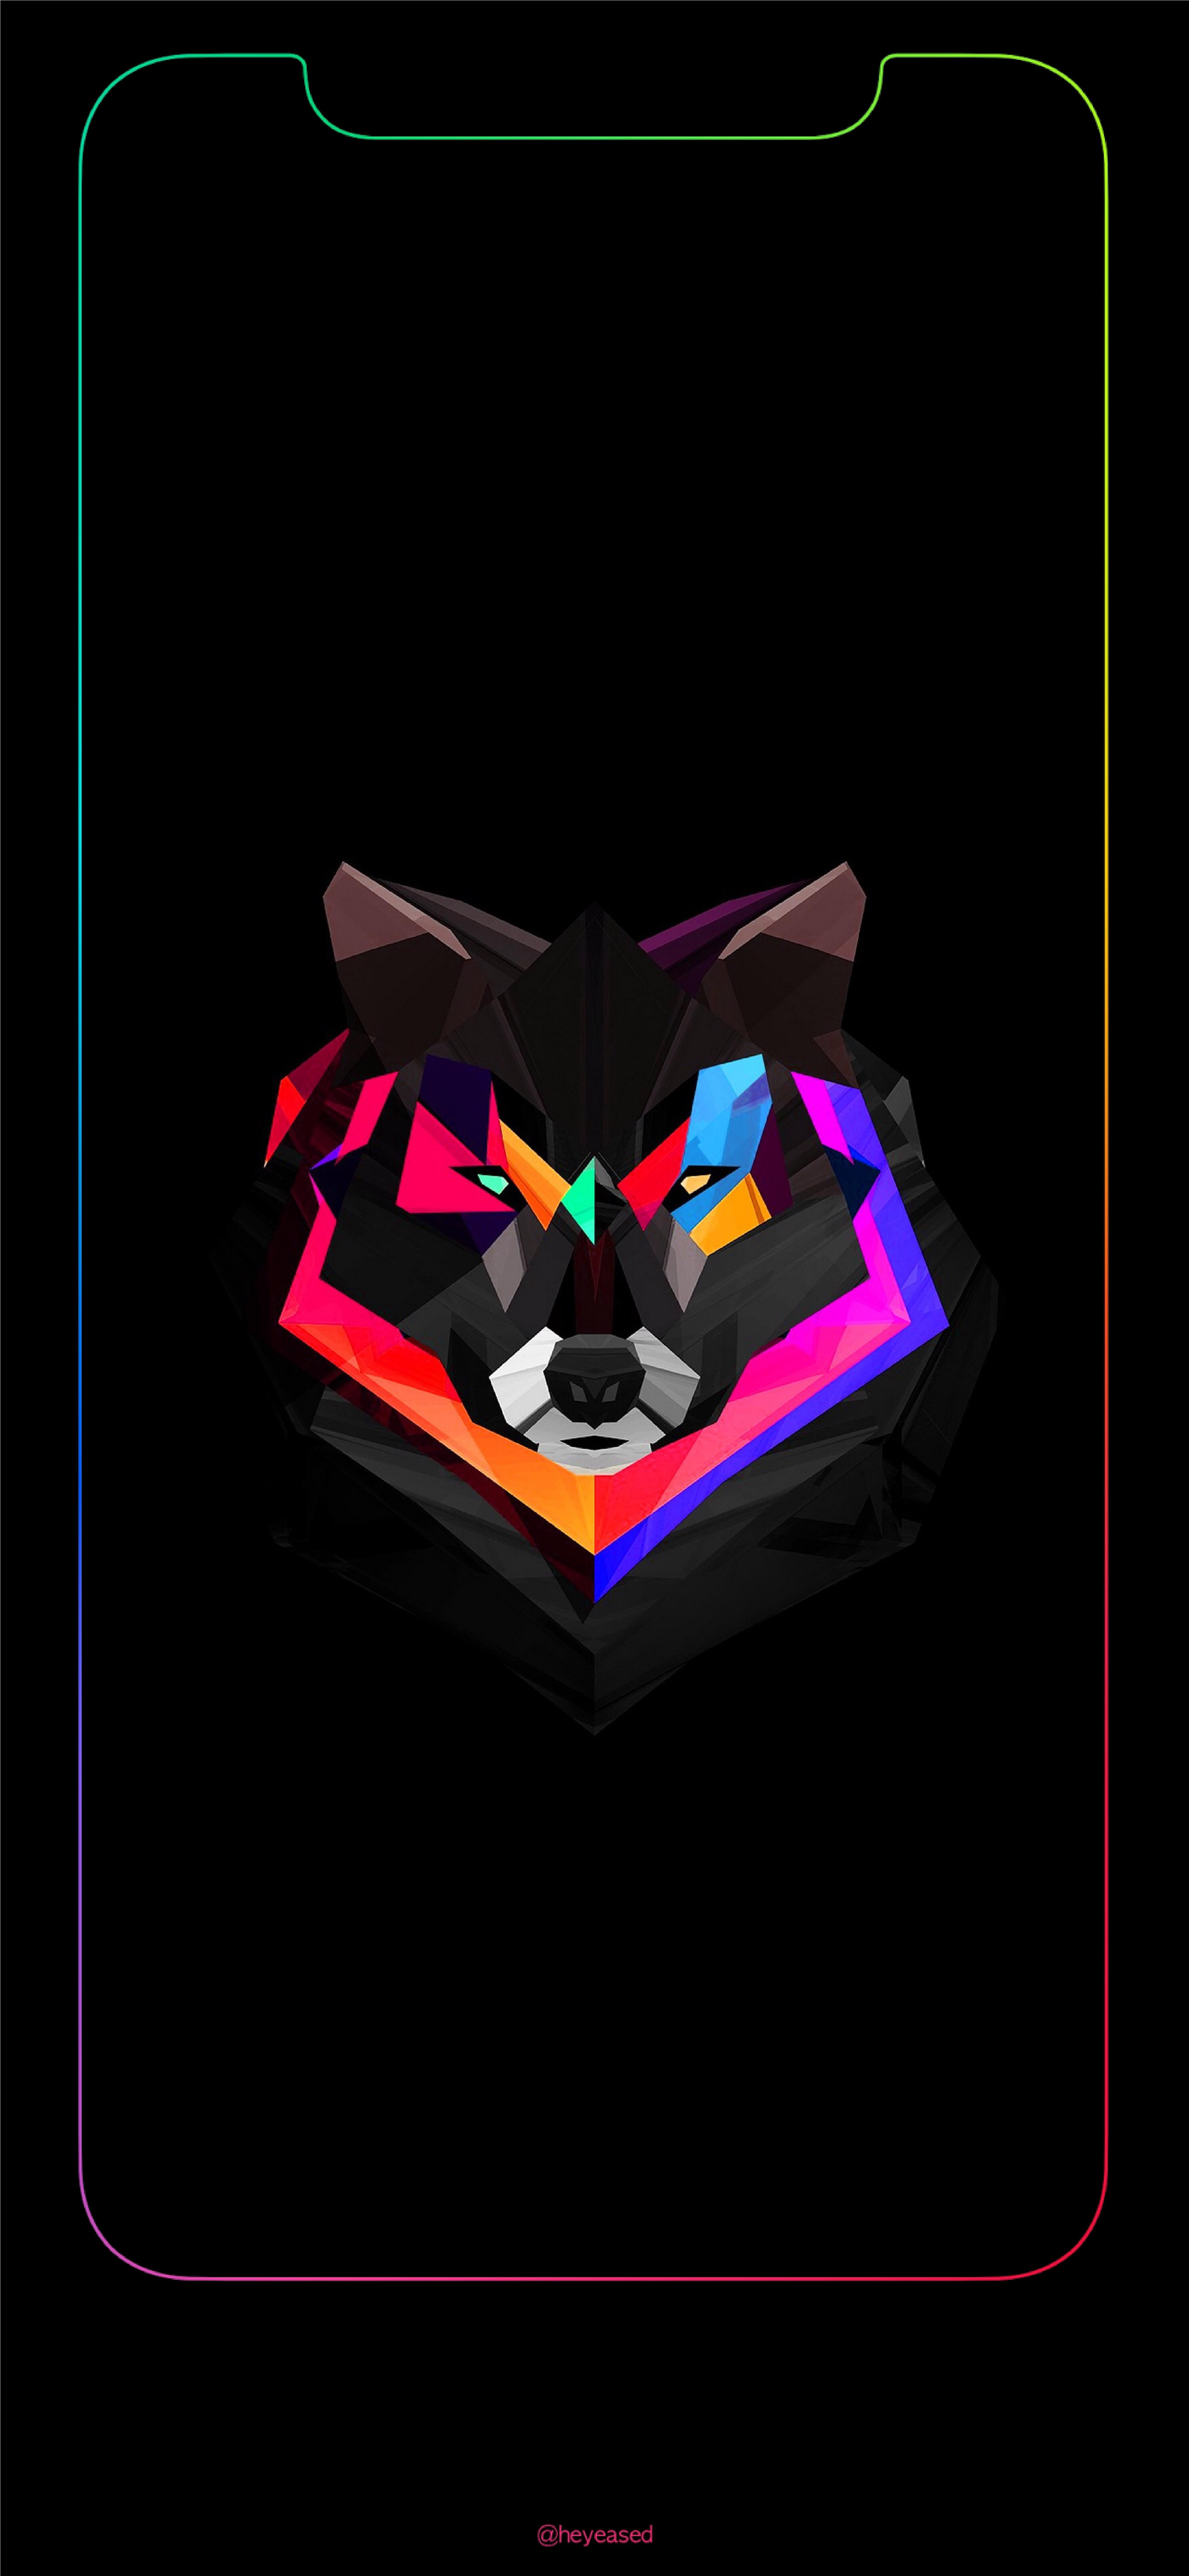 11 Outstanding Oled Wallpaper Iphone X Hd In 2020 Iphone Wallpaper Phone Wallpapers Vintage Iphone Wallpaper Ios